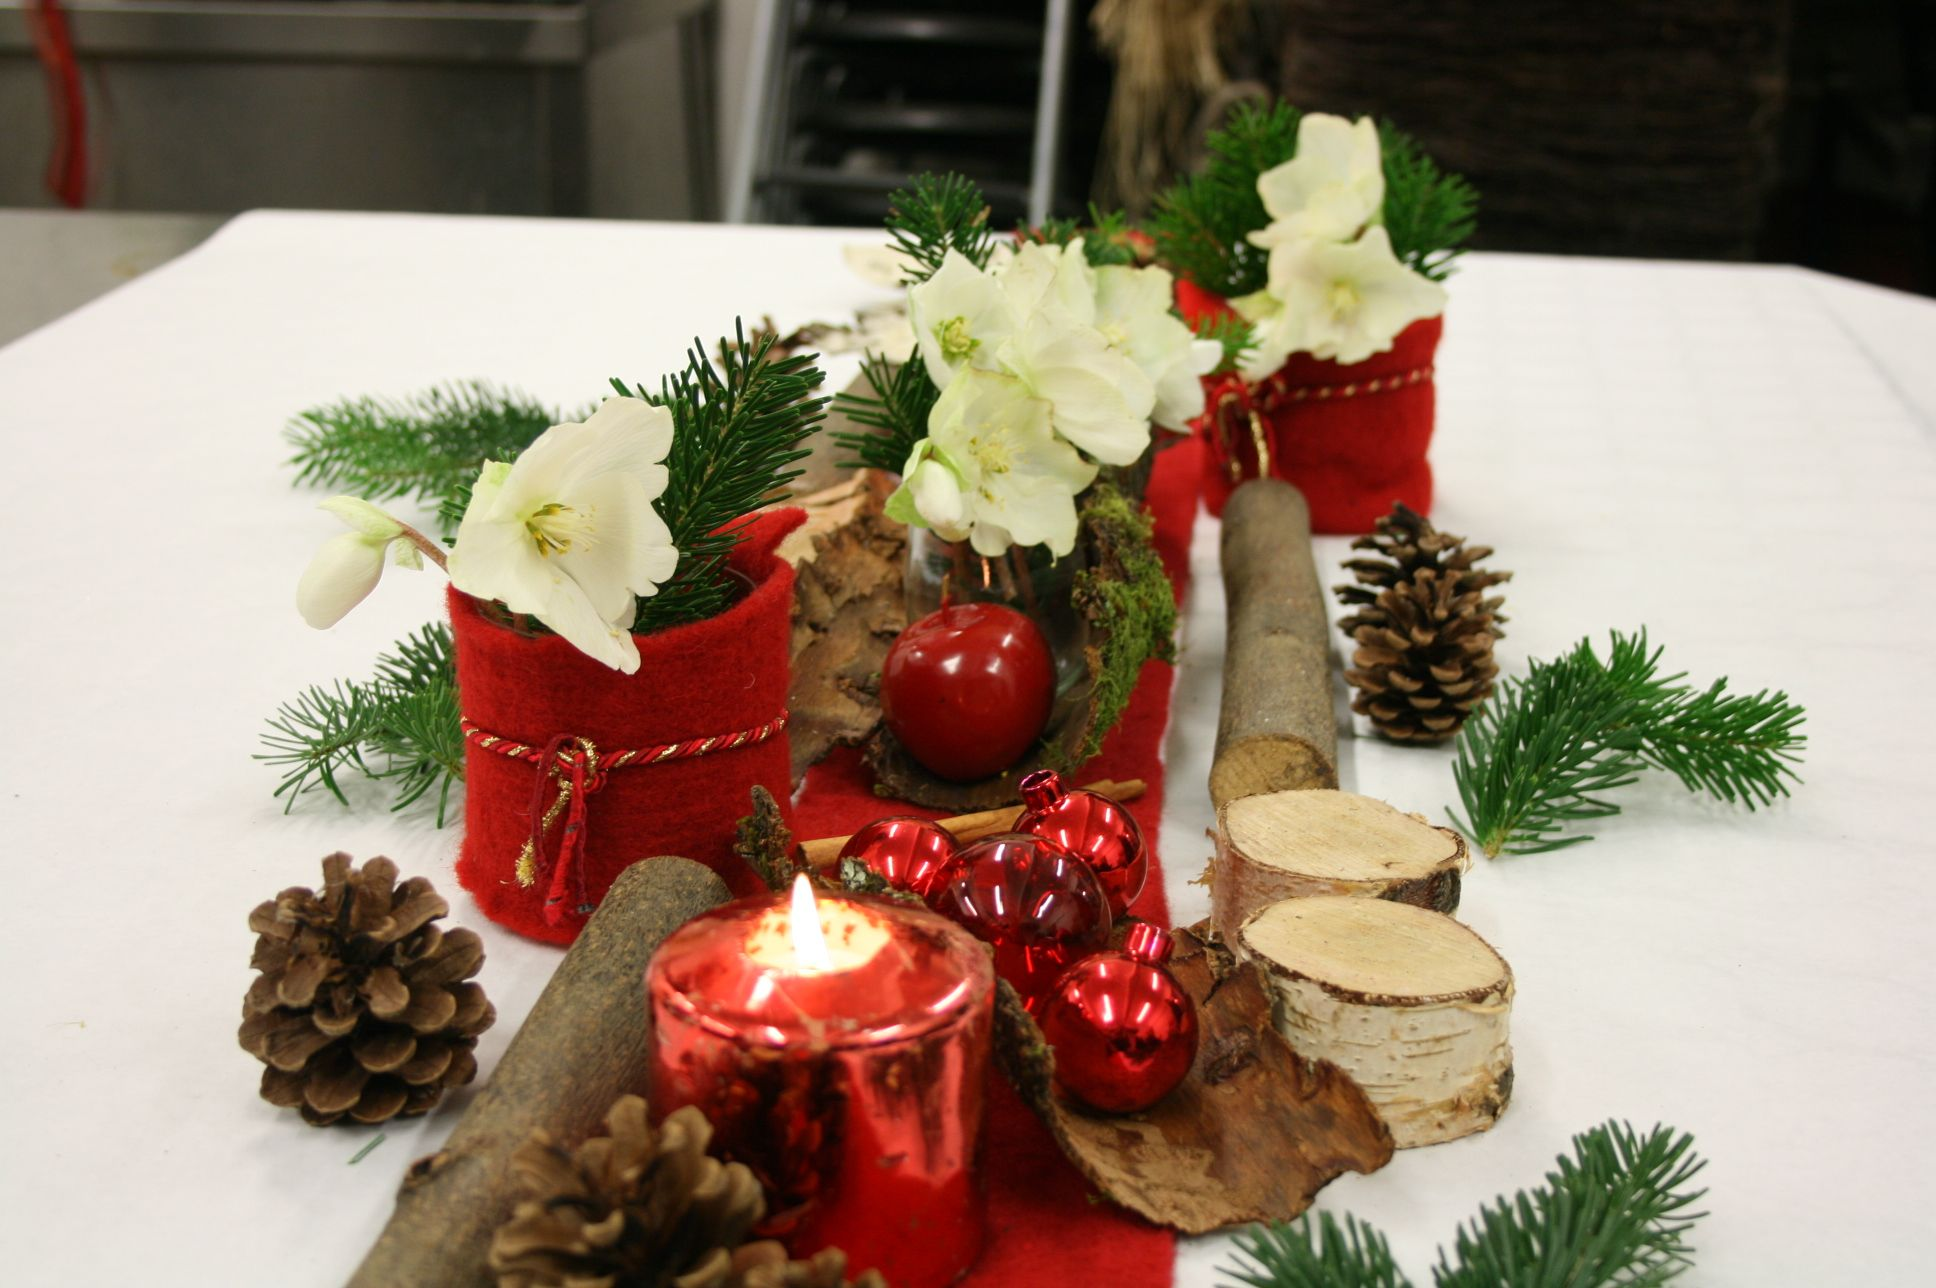 #AF281C Décoration De Noël Chemin De Table En Rouge Et Blanc  5505 decorations de noel rouge et blanc 1936x1288 px @ aertt.com